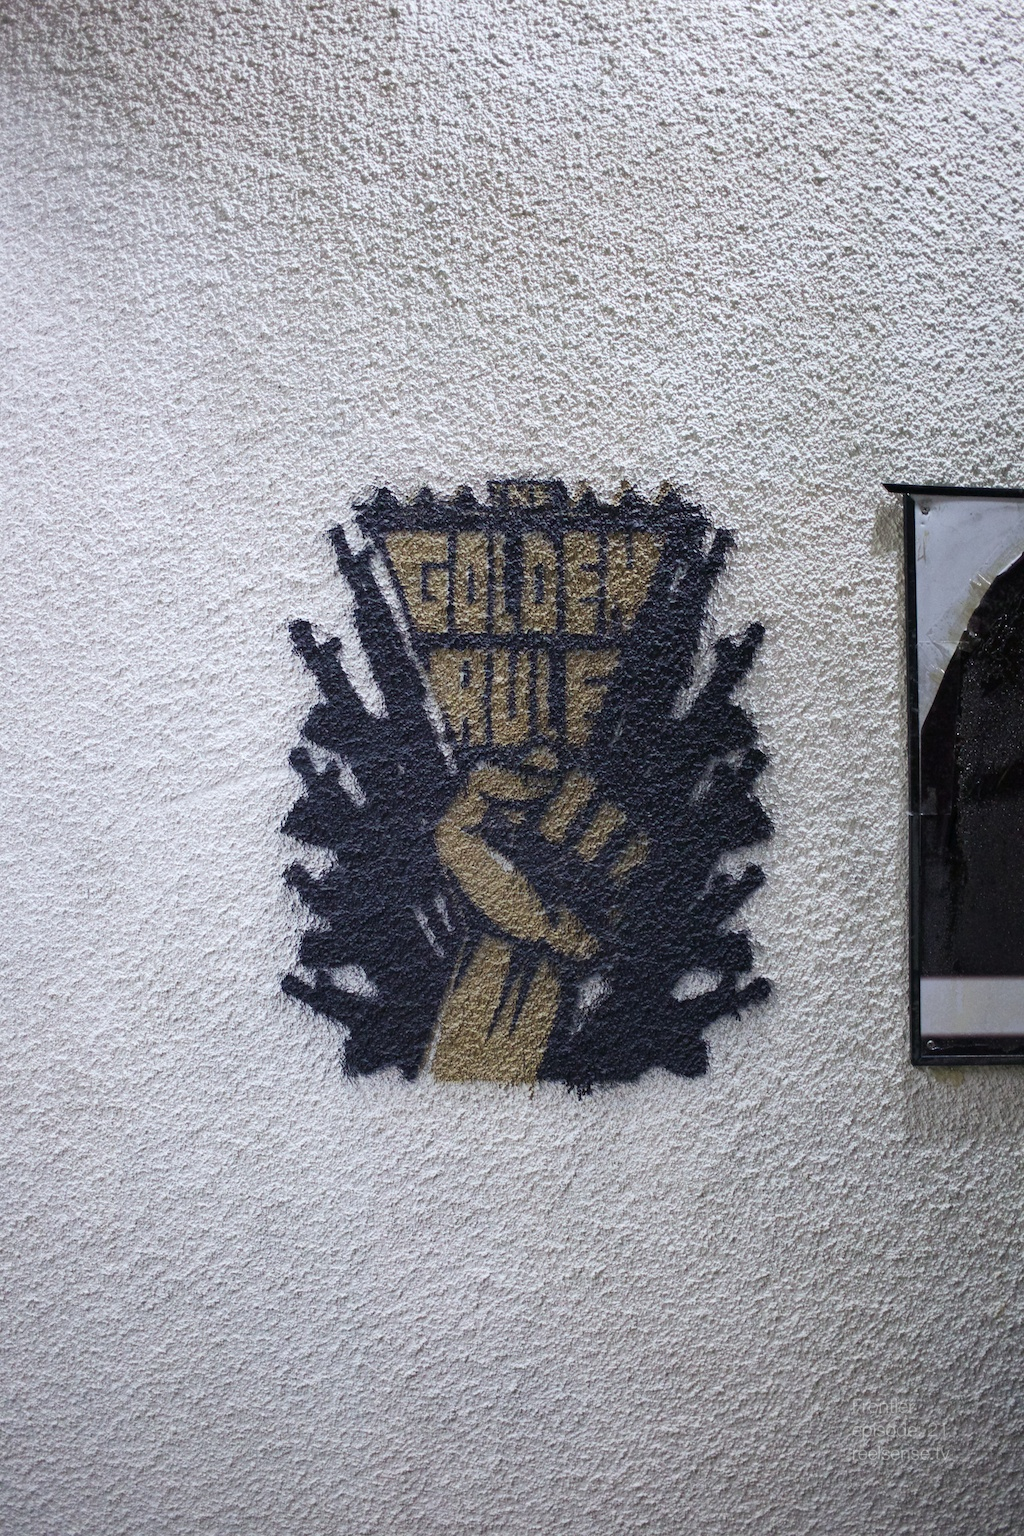 """Griffith Observatory - Los Angeles - """"Golden Rule"""" street art on wall"""